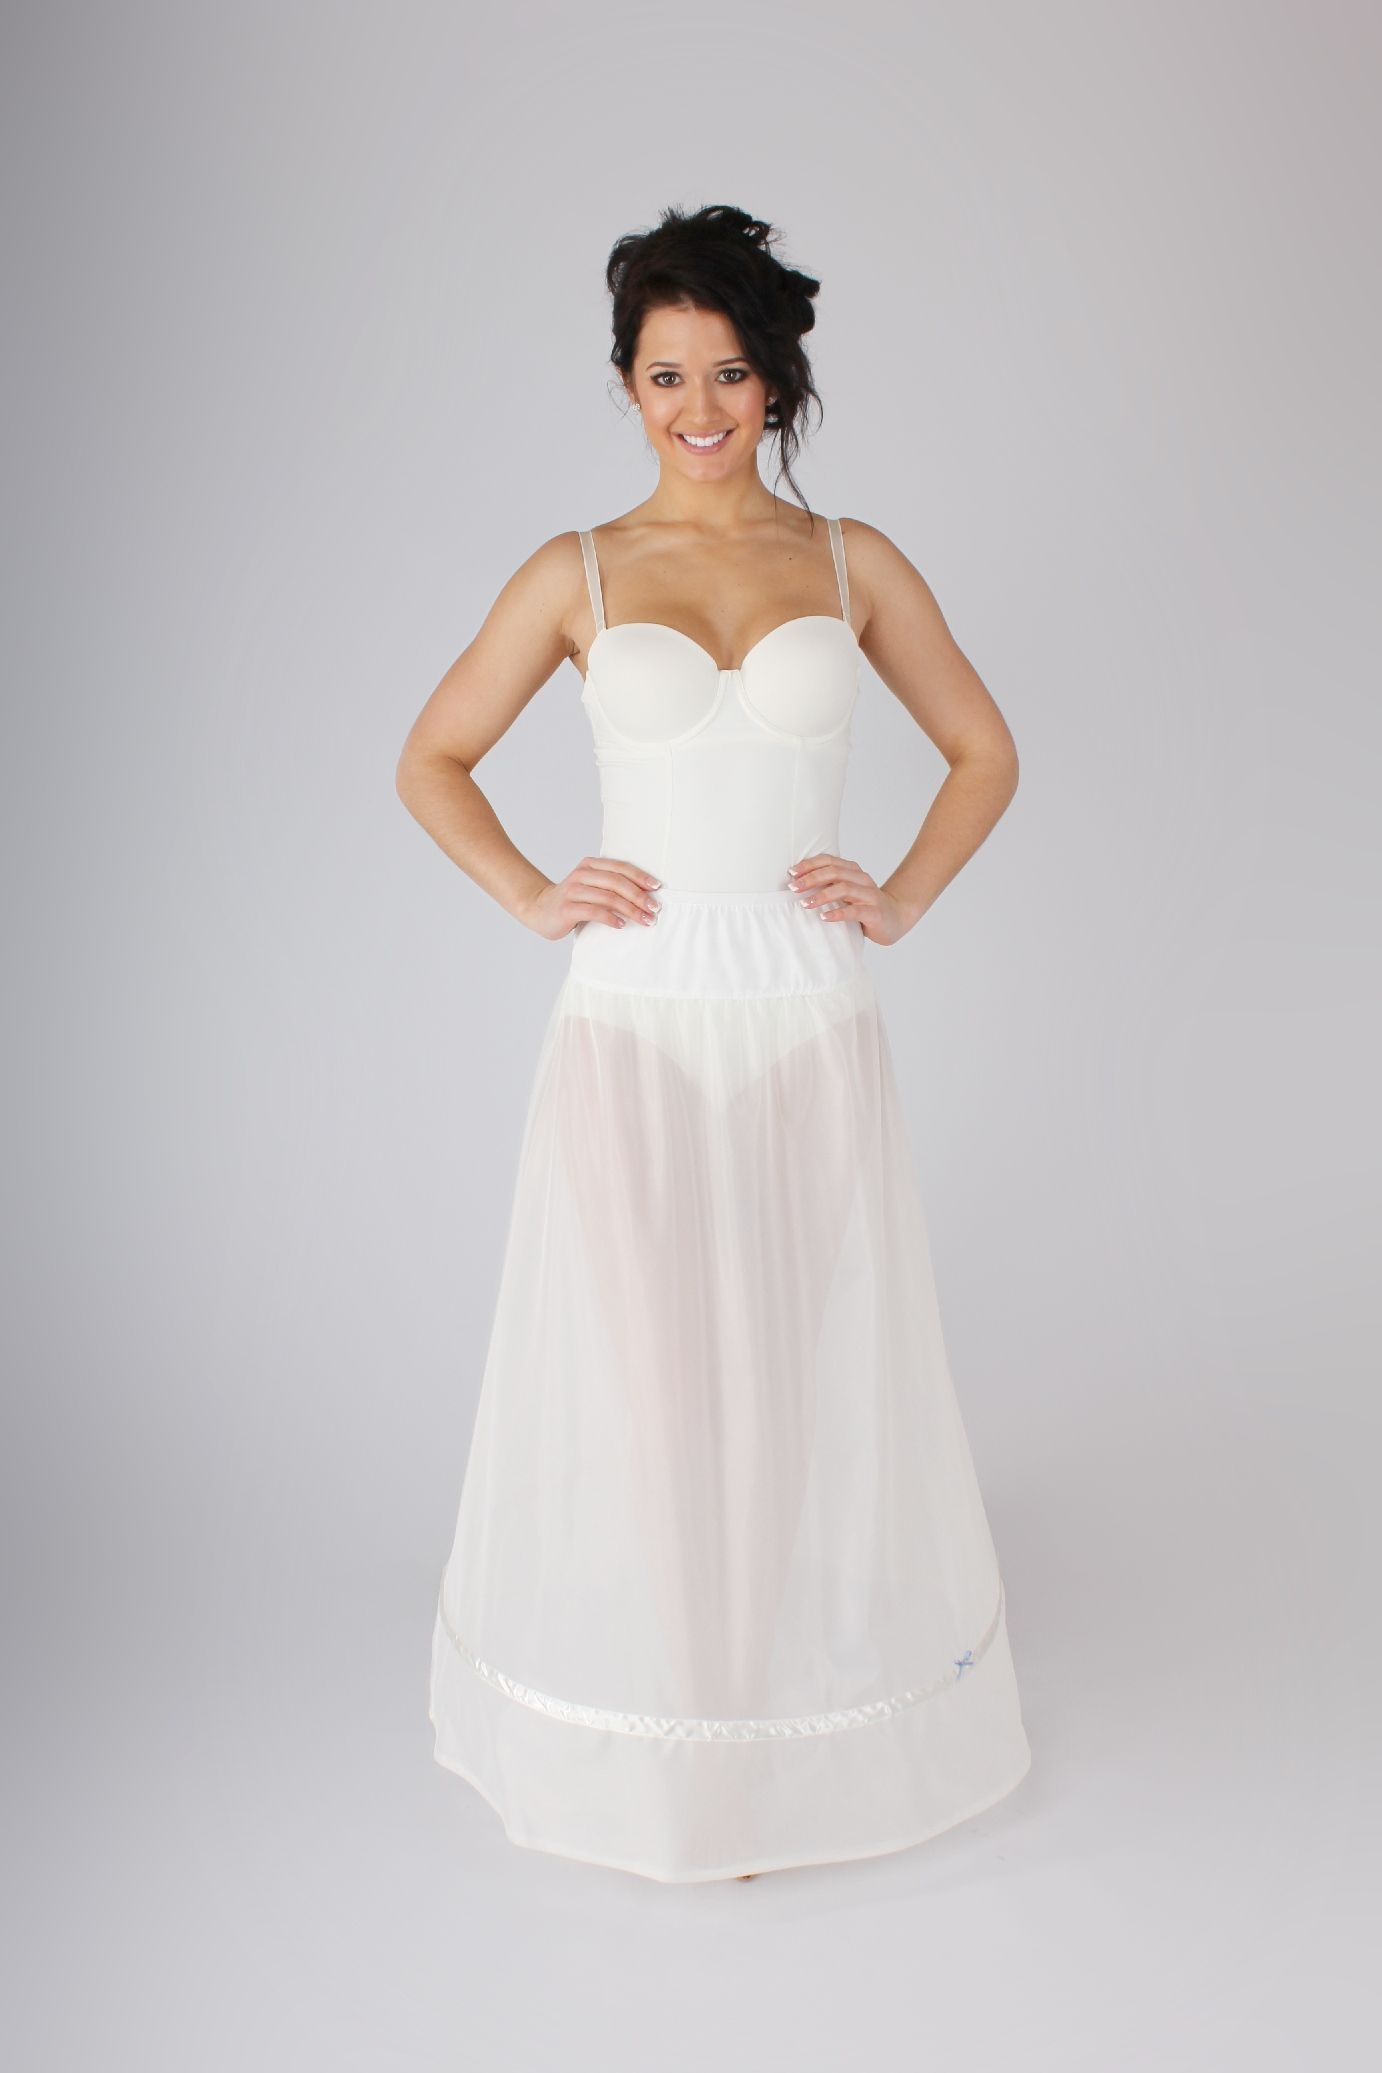 Pin by emma bridals on blue ribbon underskirts pinterest blue